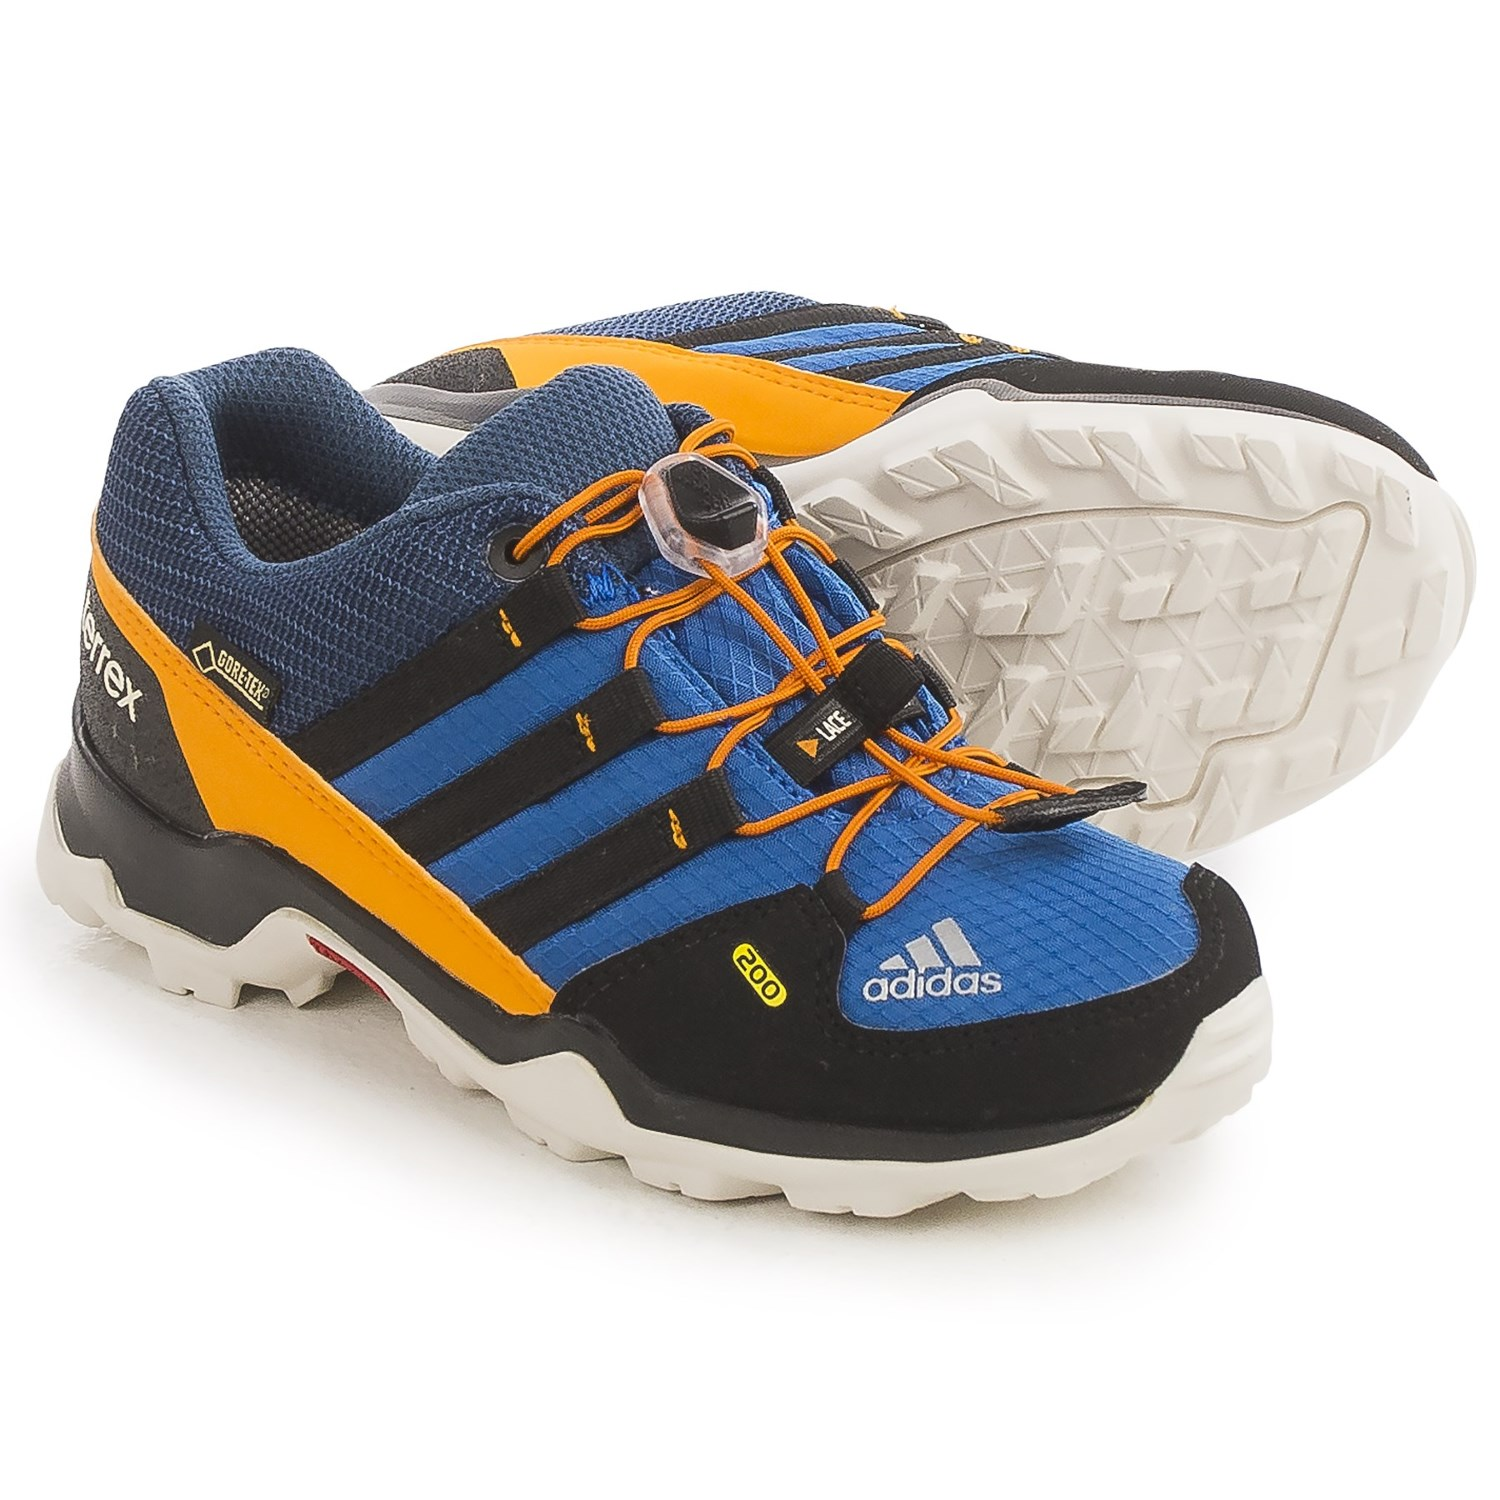 Adidas Outdoor Fast X Gore Tex Hiking Shoes Waterproof